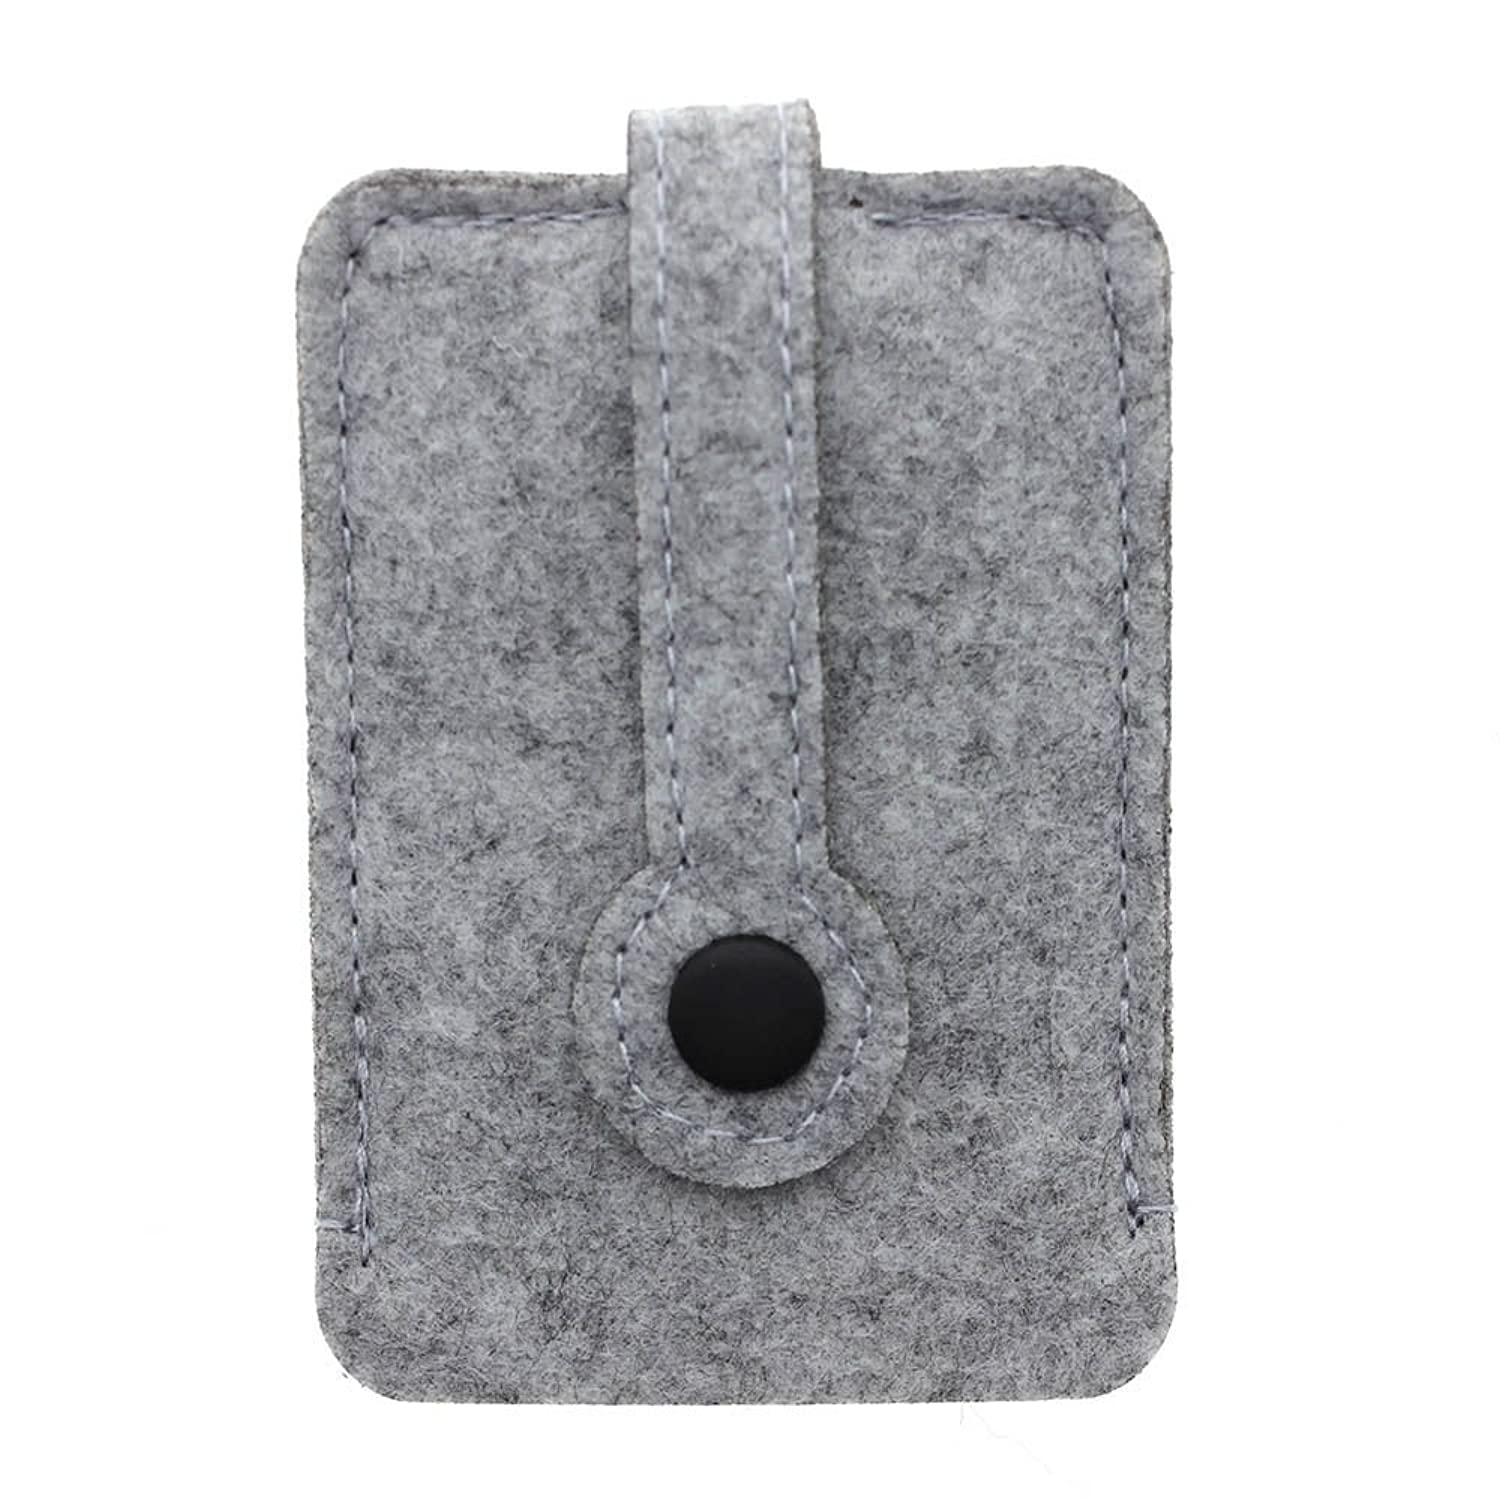 Fashion Woolen Felt Car Key Chain Wallet Compact Holder Purse Cover Organizer Color: Light gray